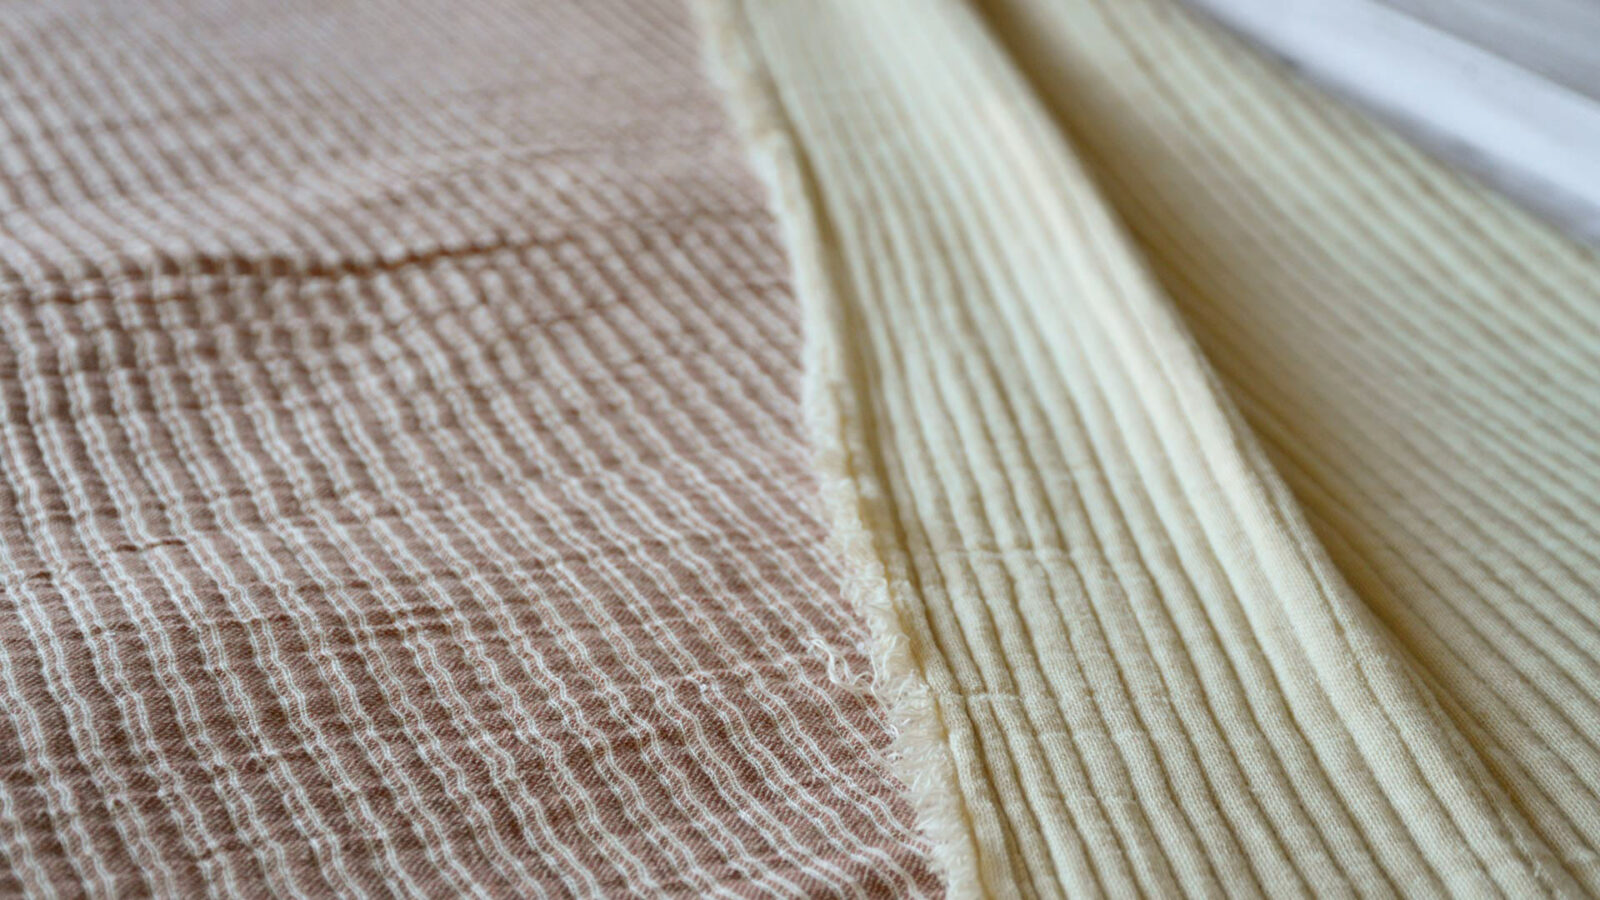 reversible textured cotton bedspread pink striped one side plain cream reverse a close-up view